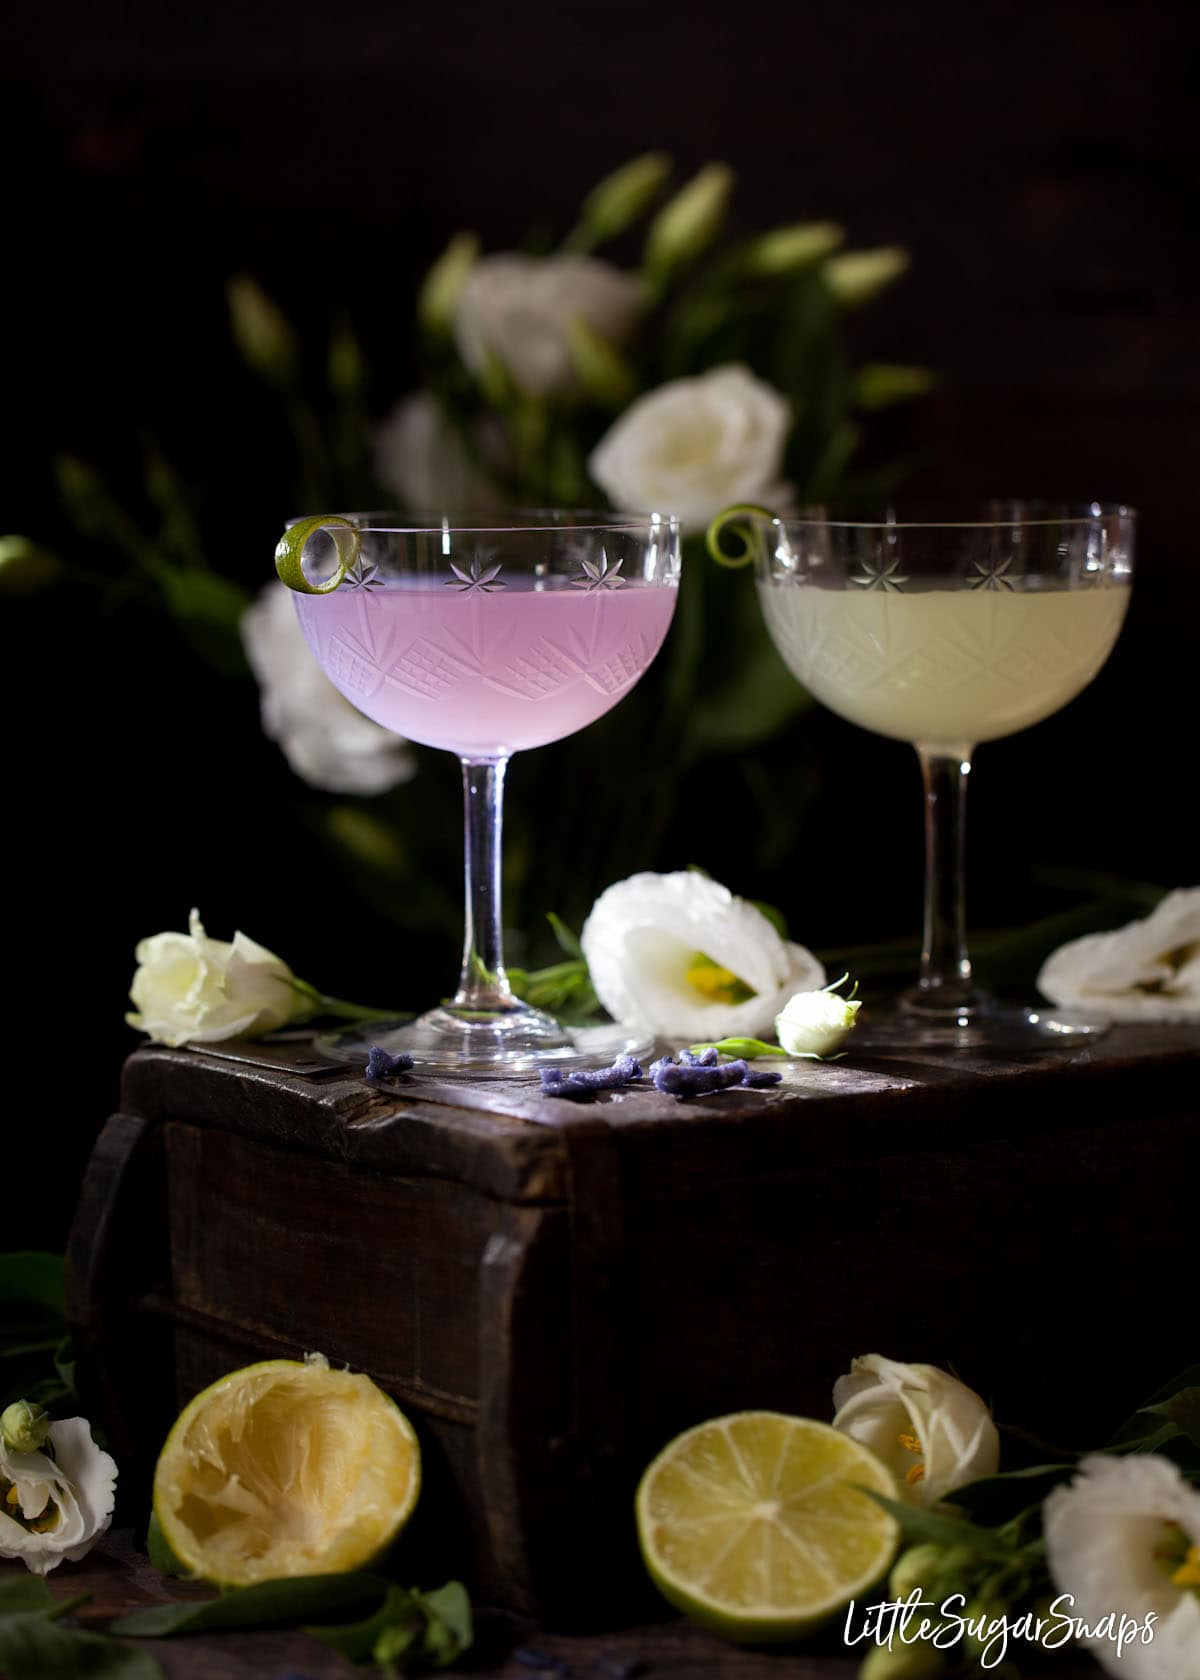 Two daiquiri cocktails on a wooden box. One is a classic lime daiquiri the other is light purple as it has been flavoured with violet. Candied violet pieces, lime halves and white flowers are in shot too